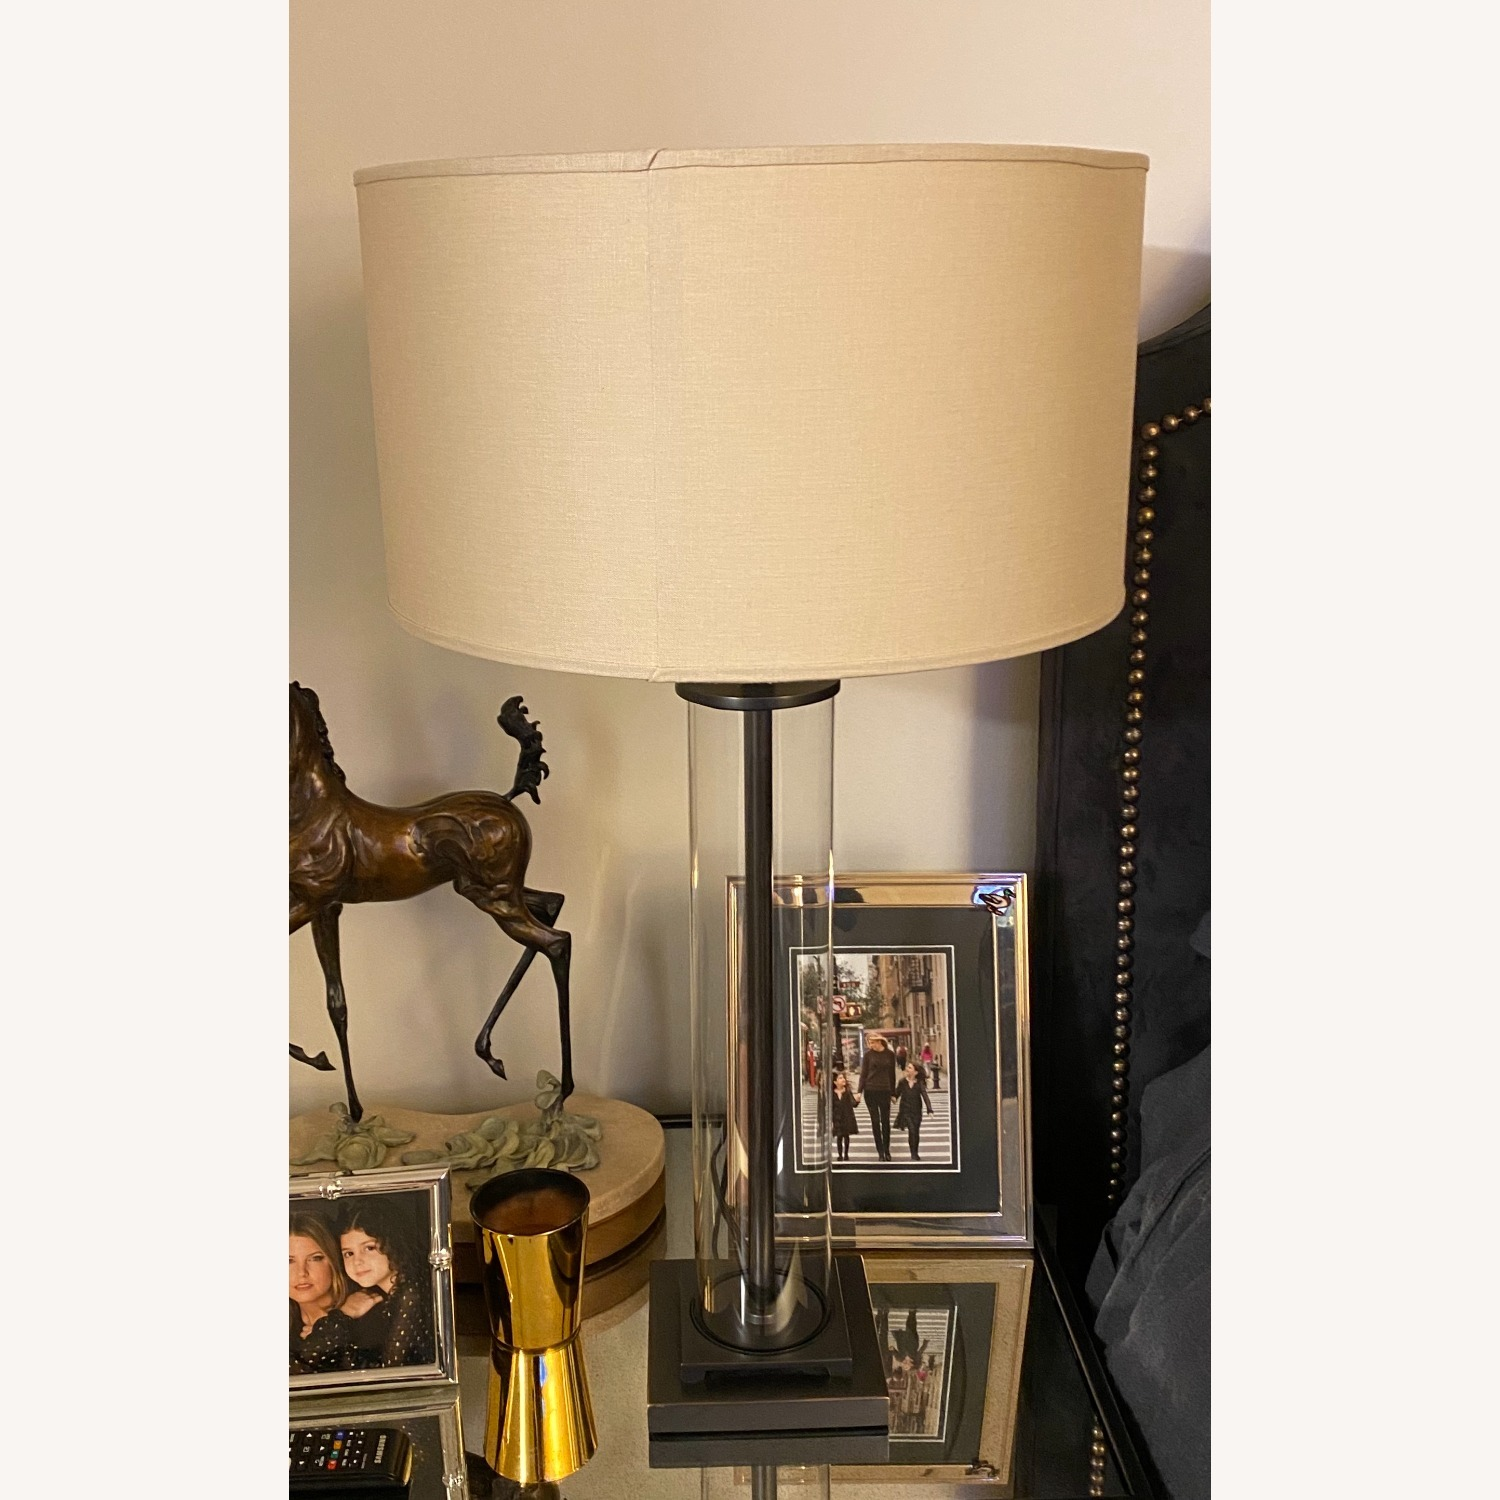 Restoration Hardware French Column Glass Table Lamp - image-1